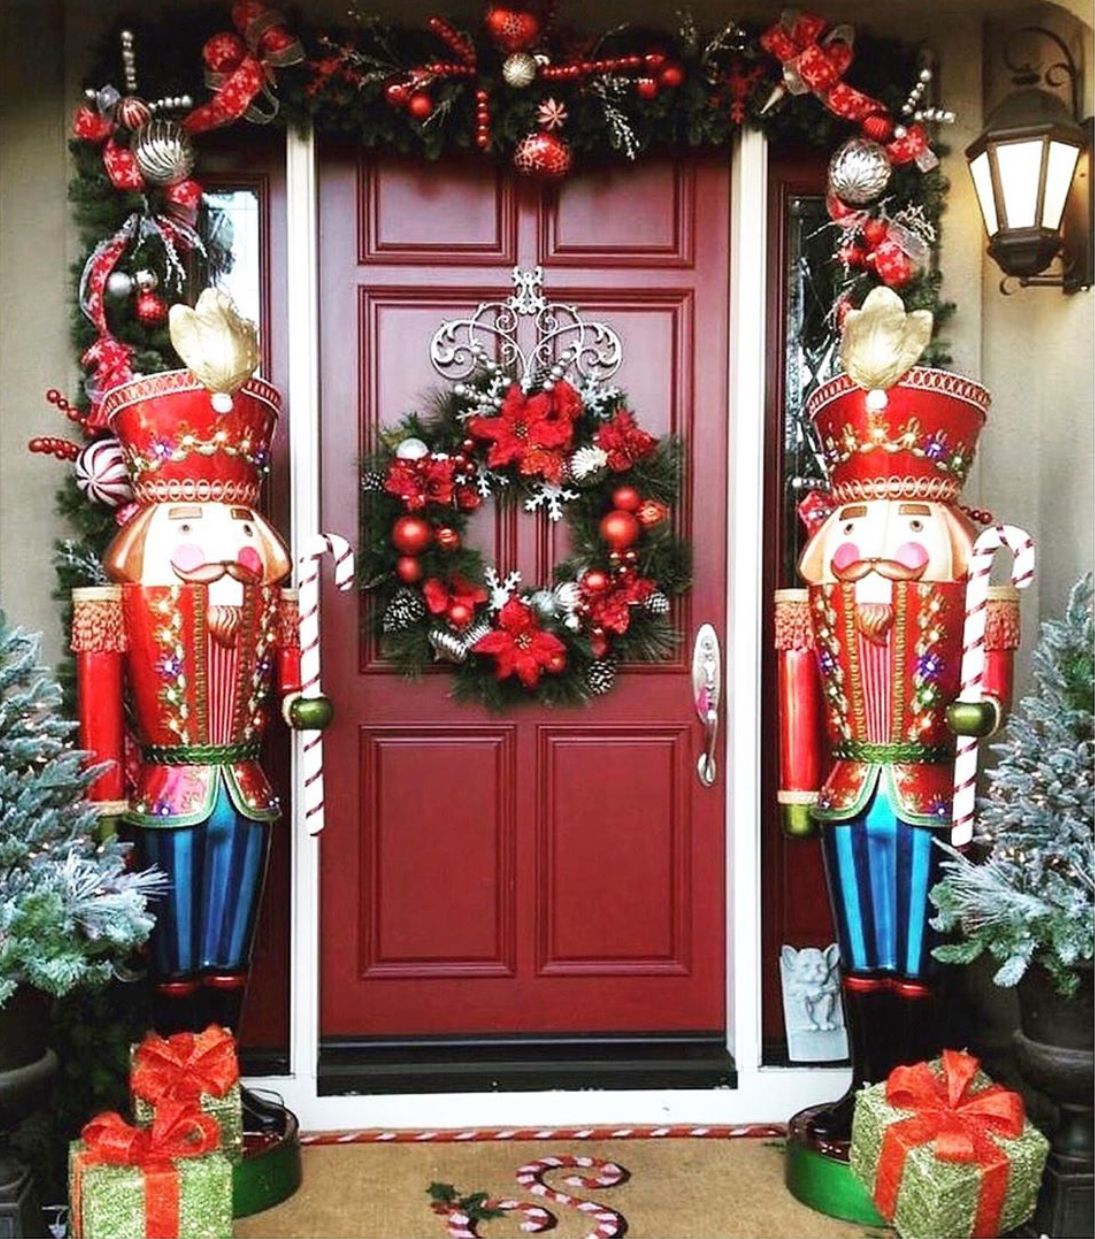 Pin by Chris Driscoll on Christmas Time! | Christmas door ...